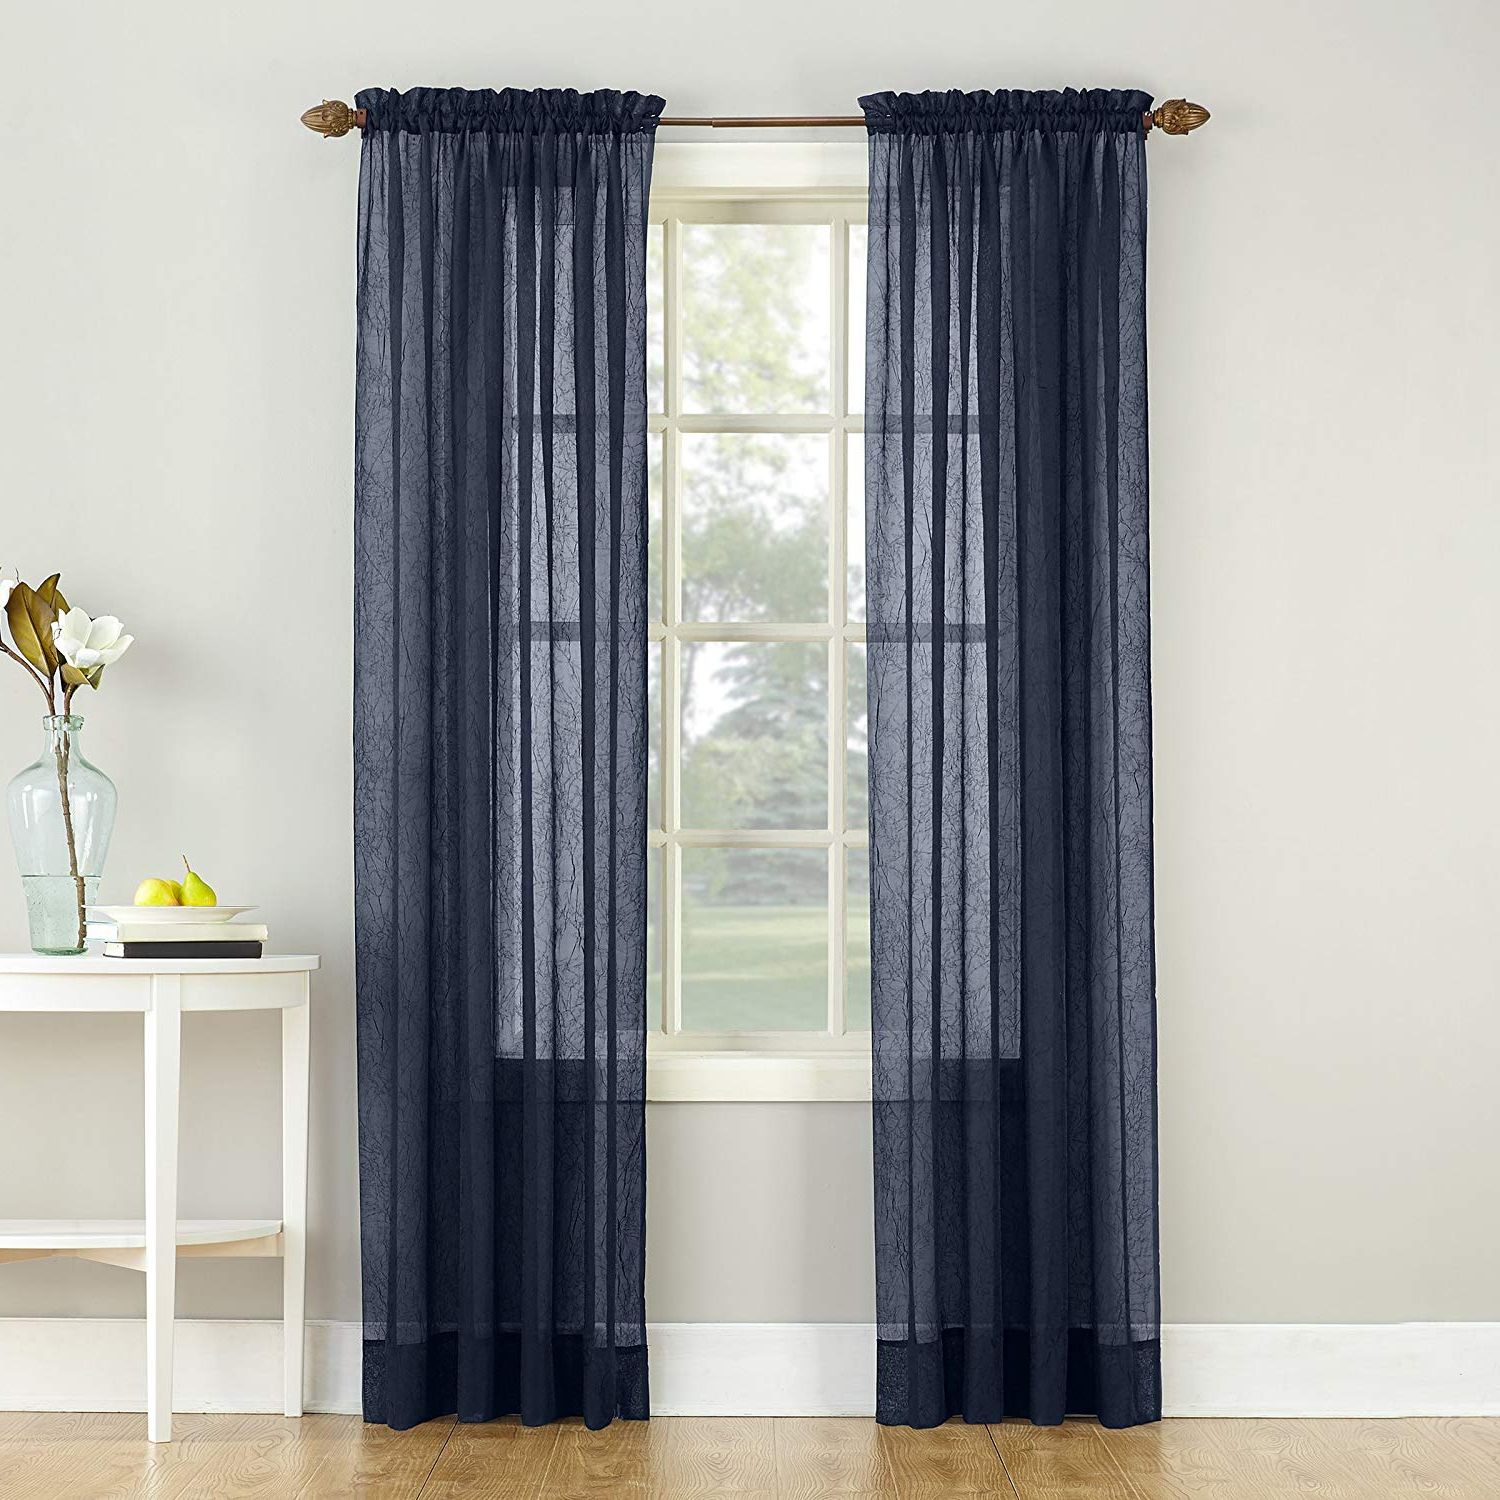 "Erica Crushed Sheer Voile Grommet Curtain Panels Inside Recent No. 918 Erica Crushed Texture Sheer Voile Rod Pocket Curtain Panel, 51"" X  84"", Navy Blue (Gallery 5 of 20)"